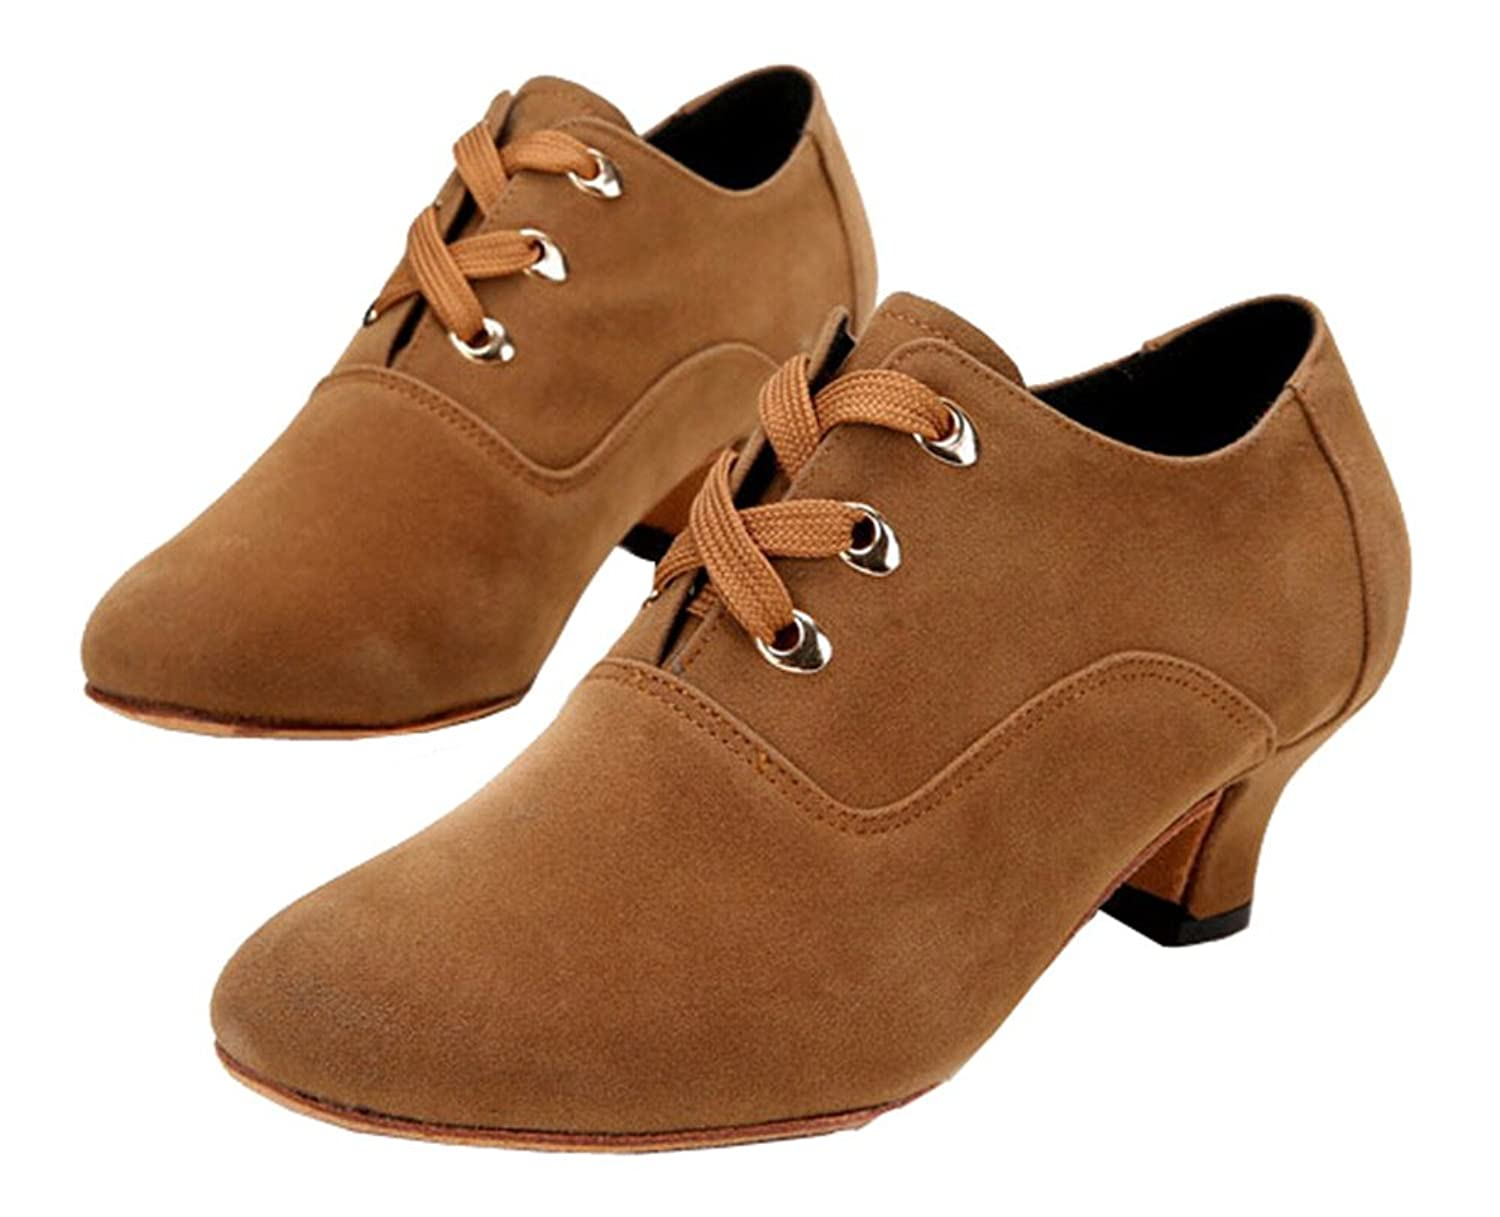 Vintage Style Shoes, Vintage Inspired Shoes Womens Modern Practice Social Dance Shoes Ankle Jazz Boots Lace-up $33.50 AT vintagedancer.com